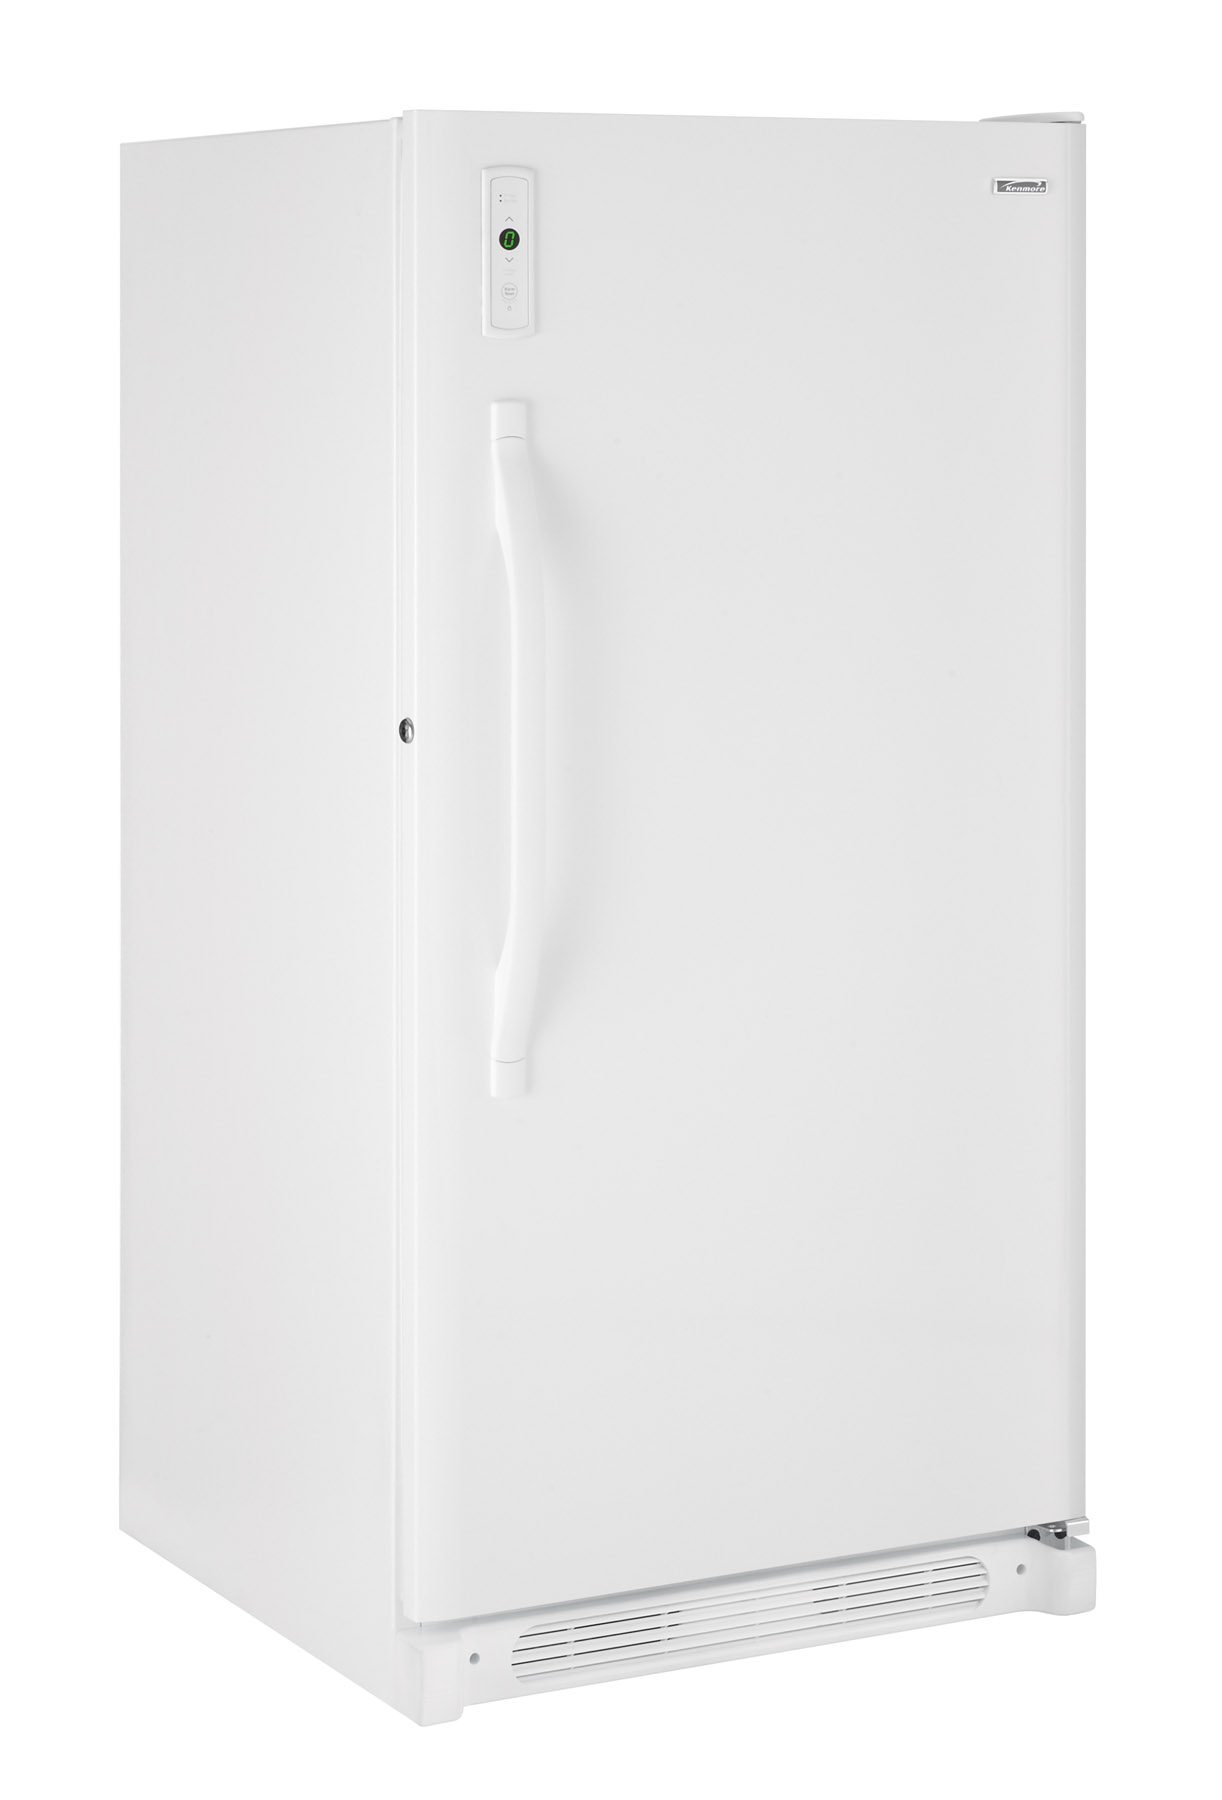 Kenmore 13.7 cu. ft. Upright Freezer, White